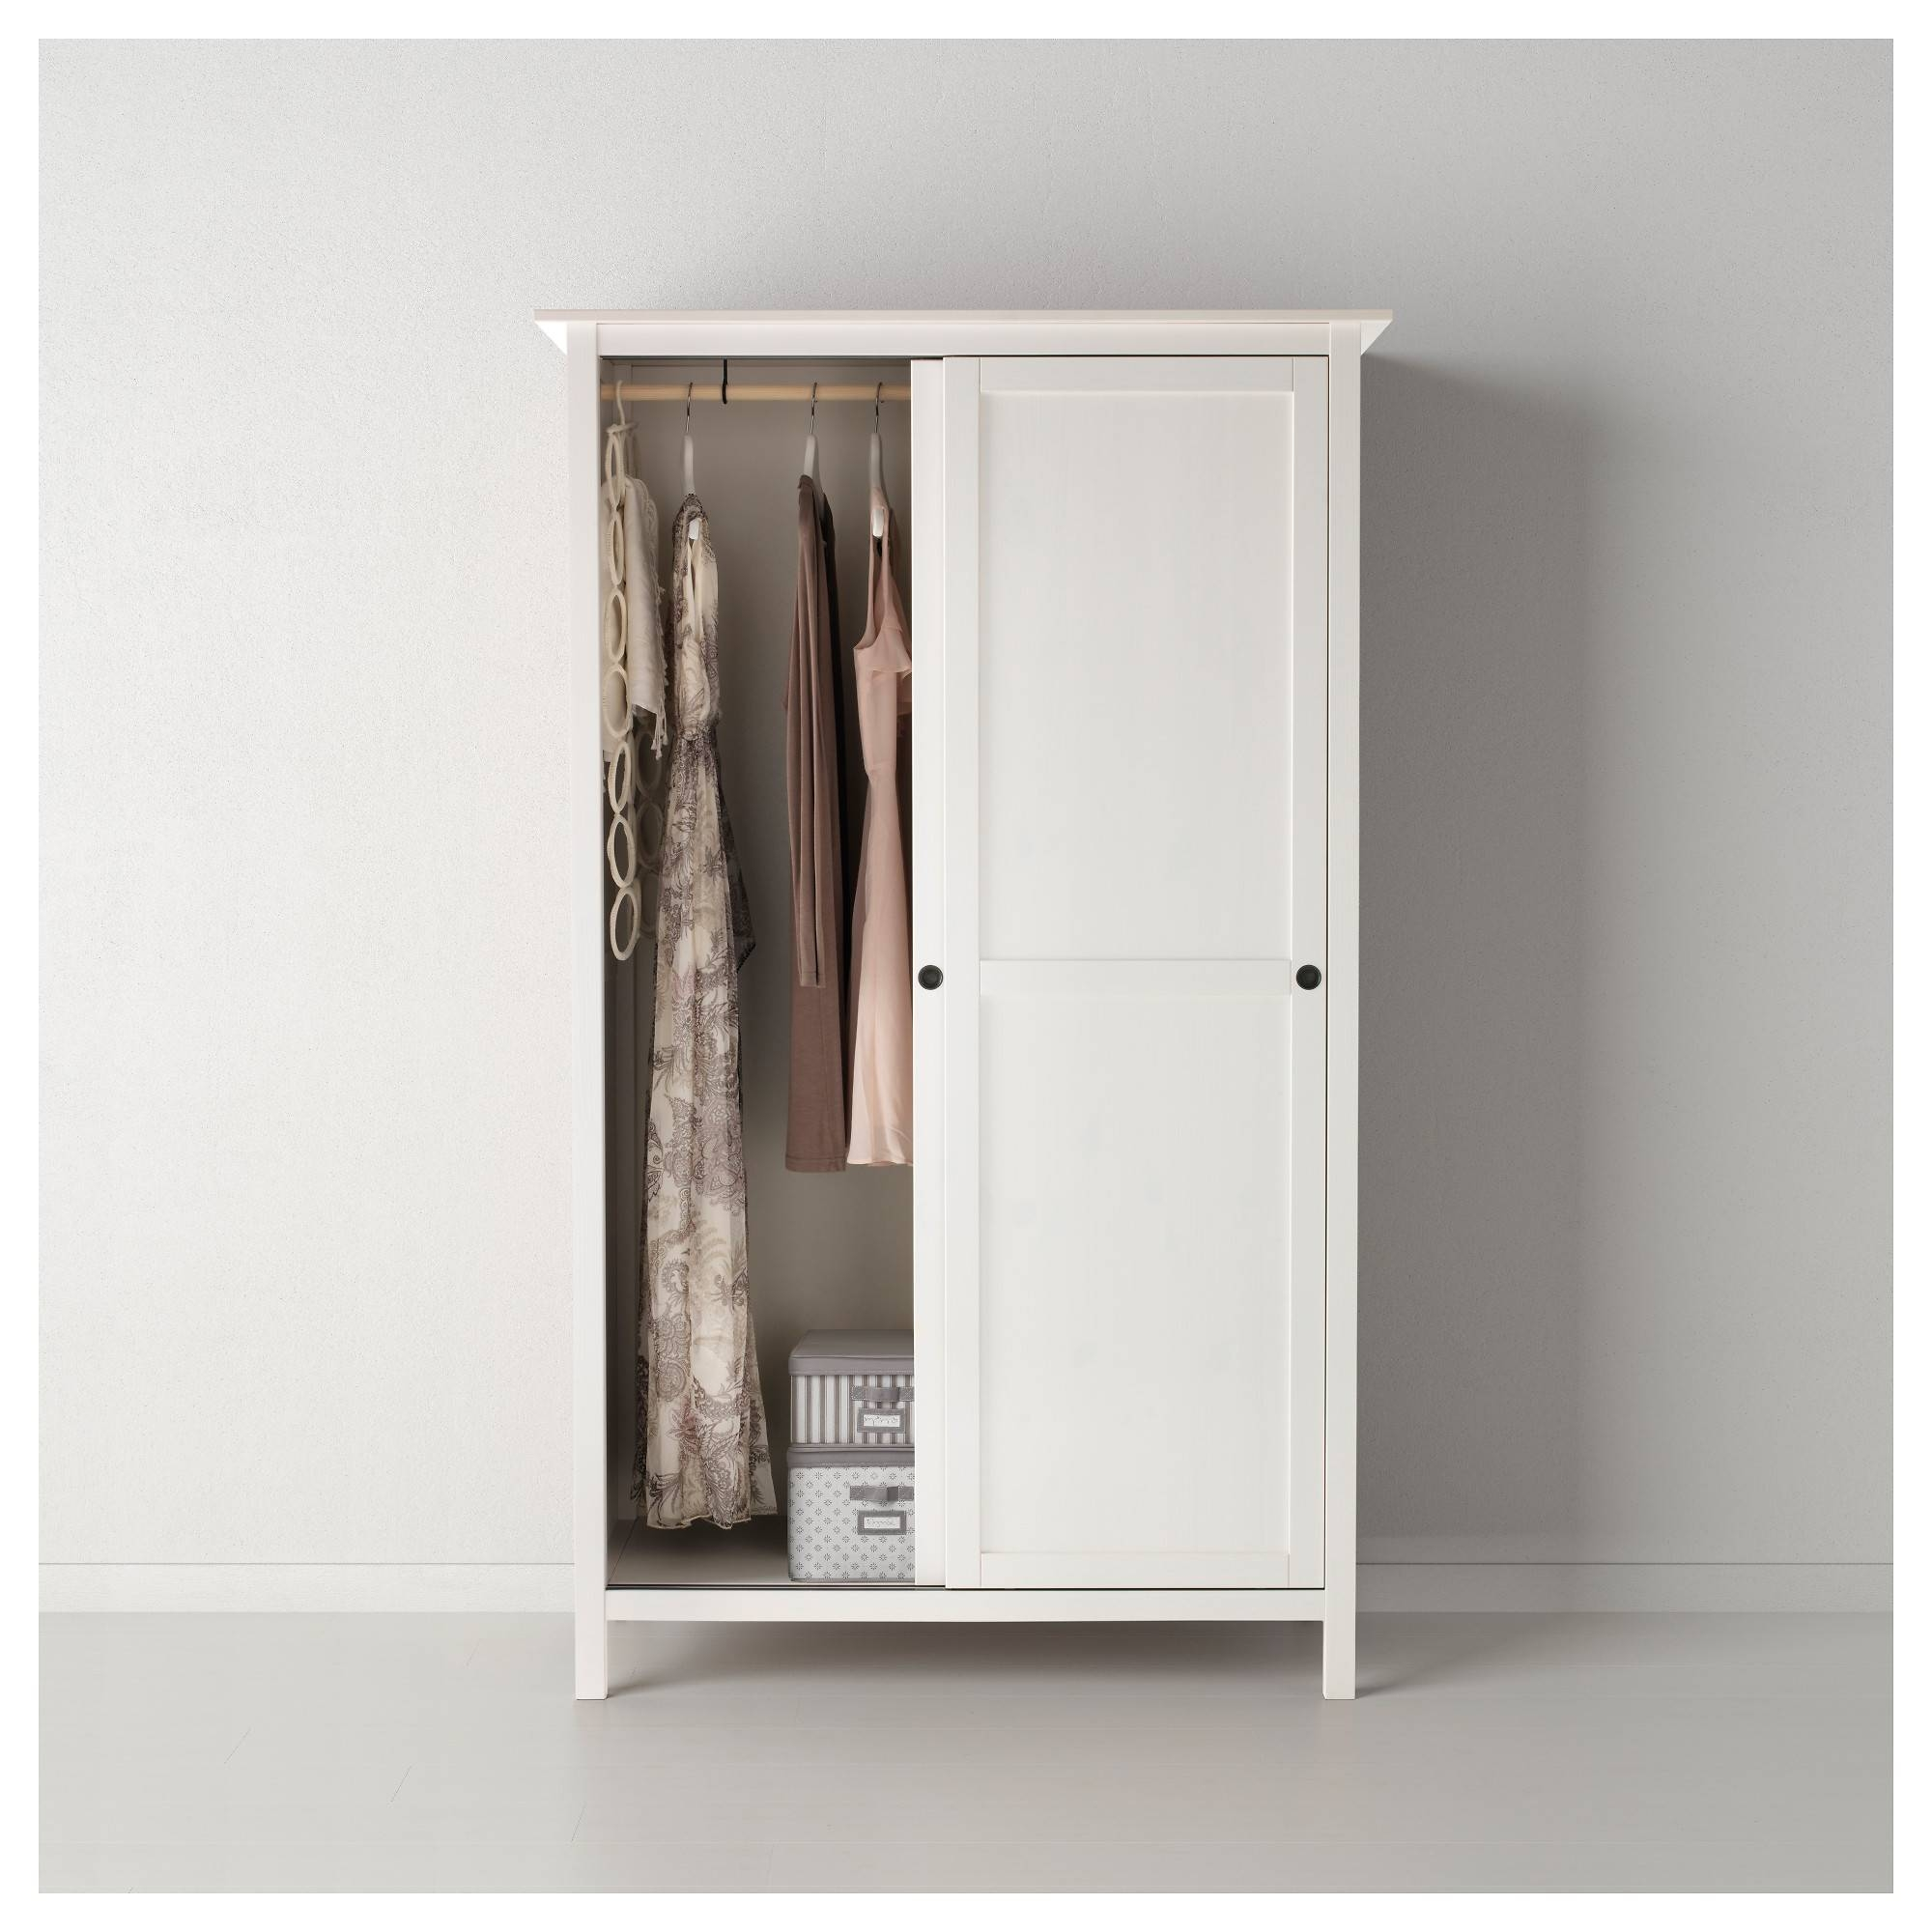 Hemnes Wardrobe With 2 Sliding Doors White Stain 120X197 Cm - Ikea inside 2 Sliding Door Wardrobes (Image 5 of 15)